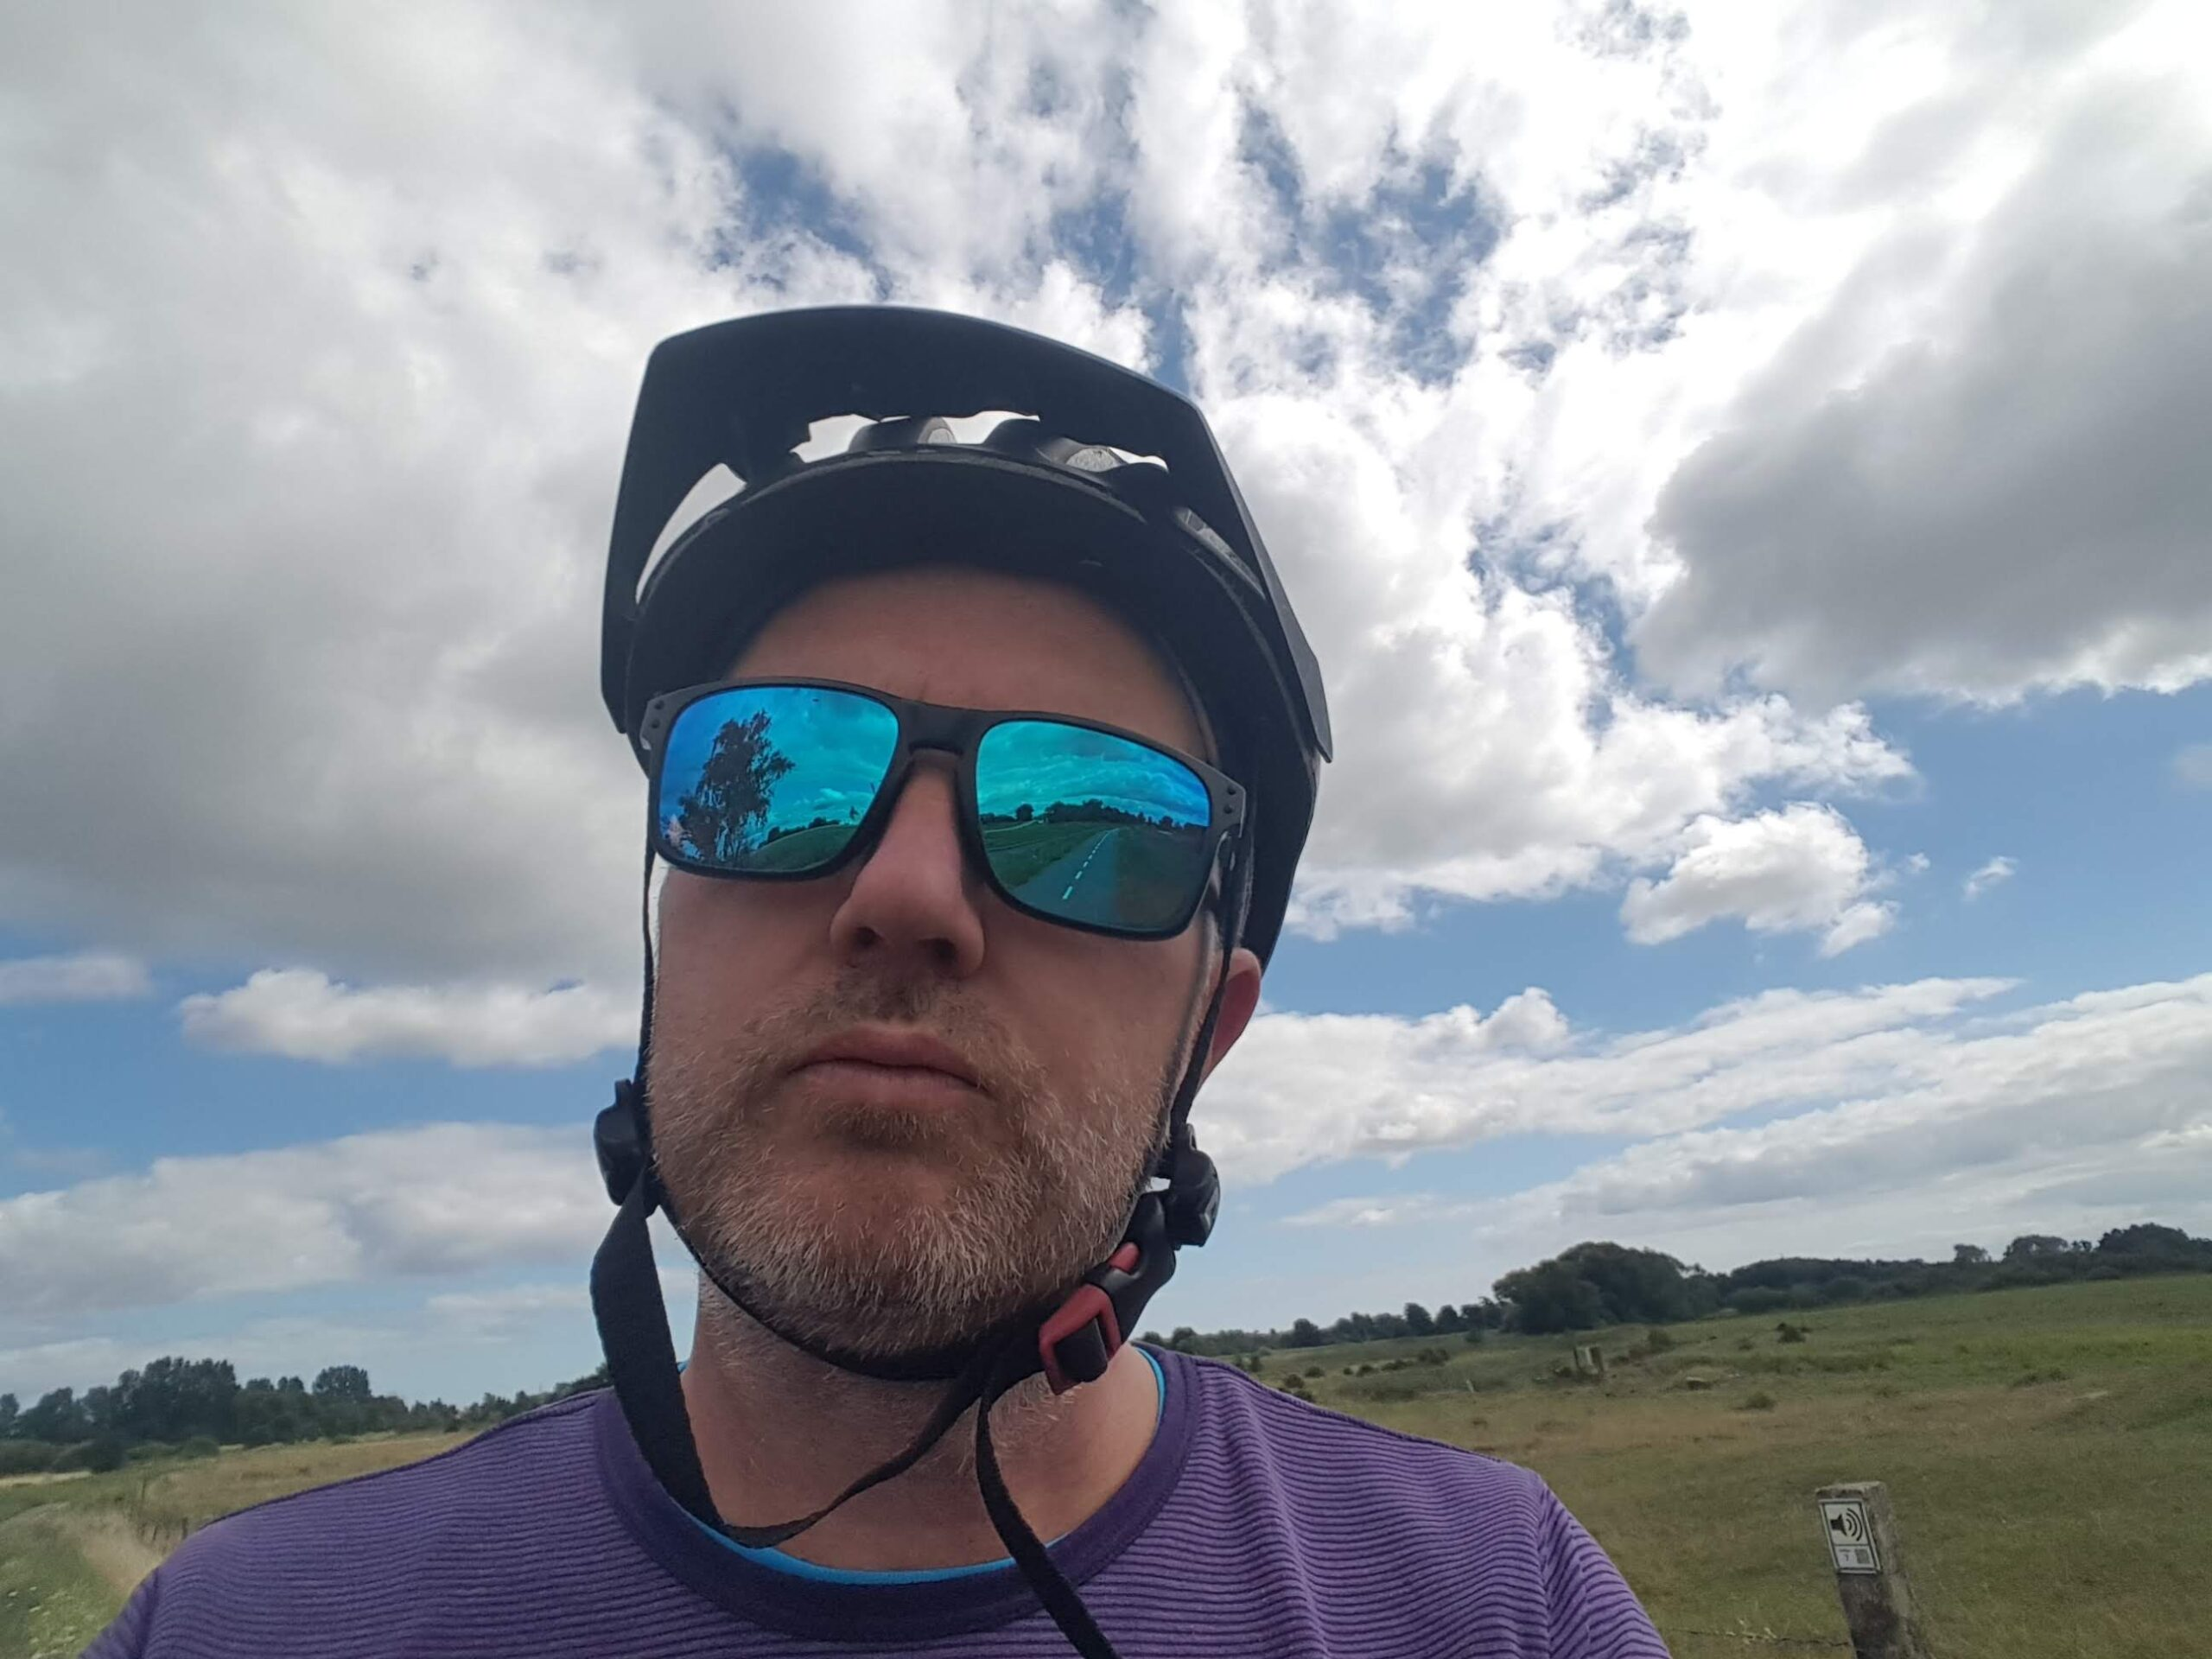 An image of a cyclist waeting mirrorshades and a helmet.